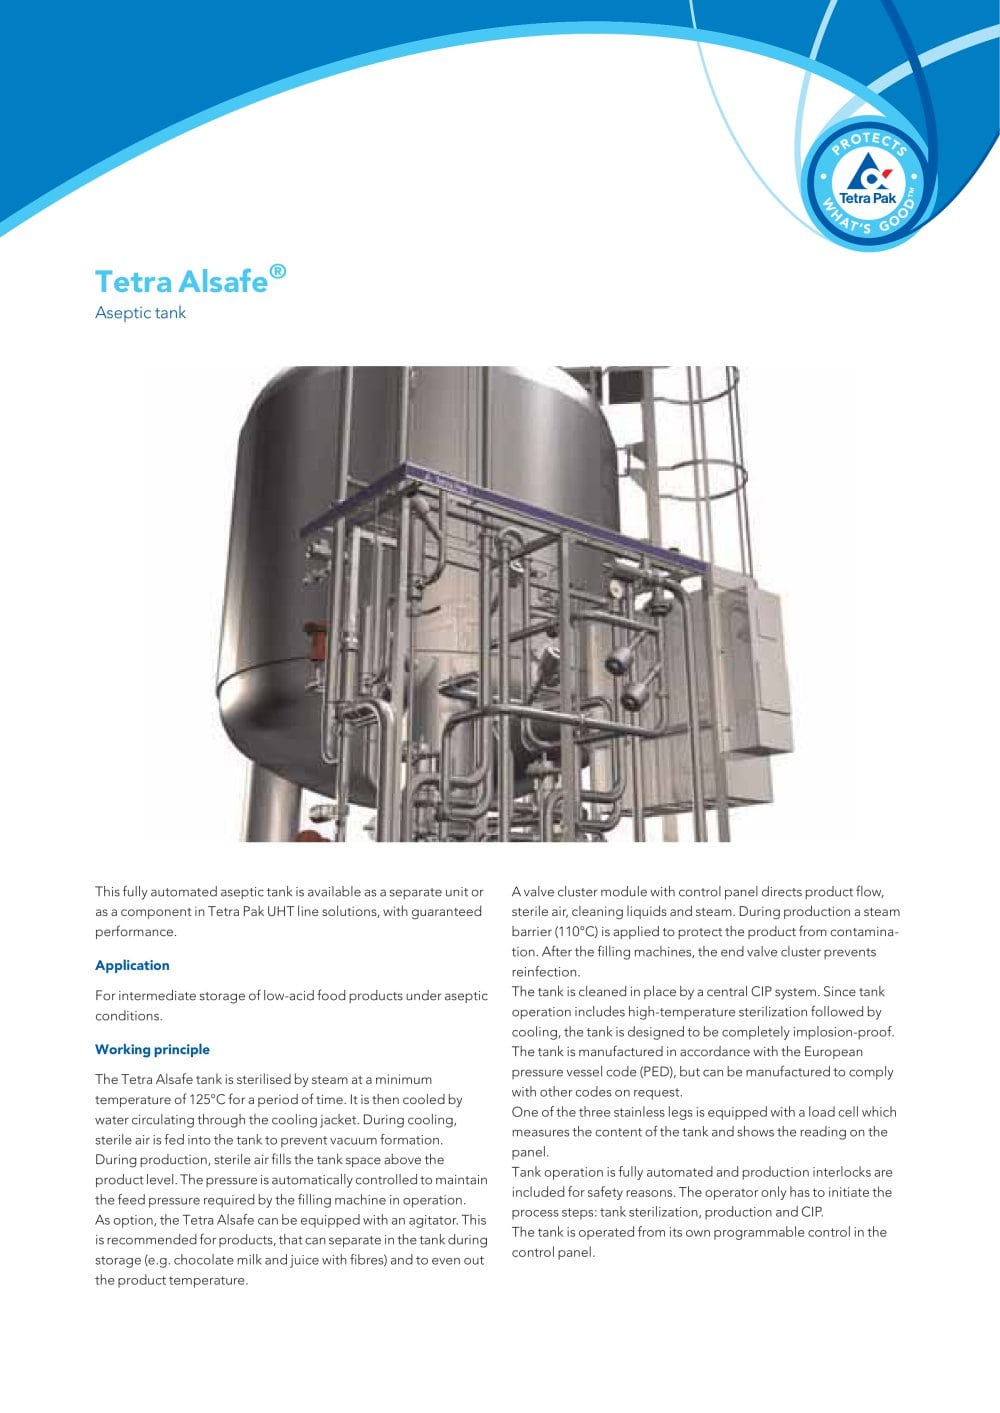 medium resolution of tetra alsafe aseptic tank 1 2 pages